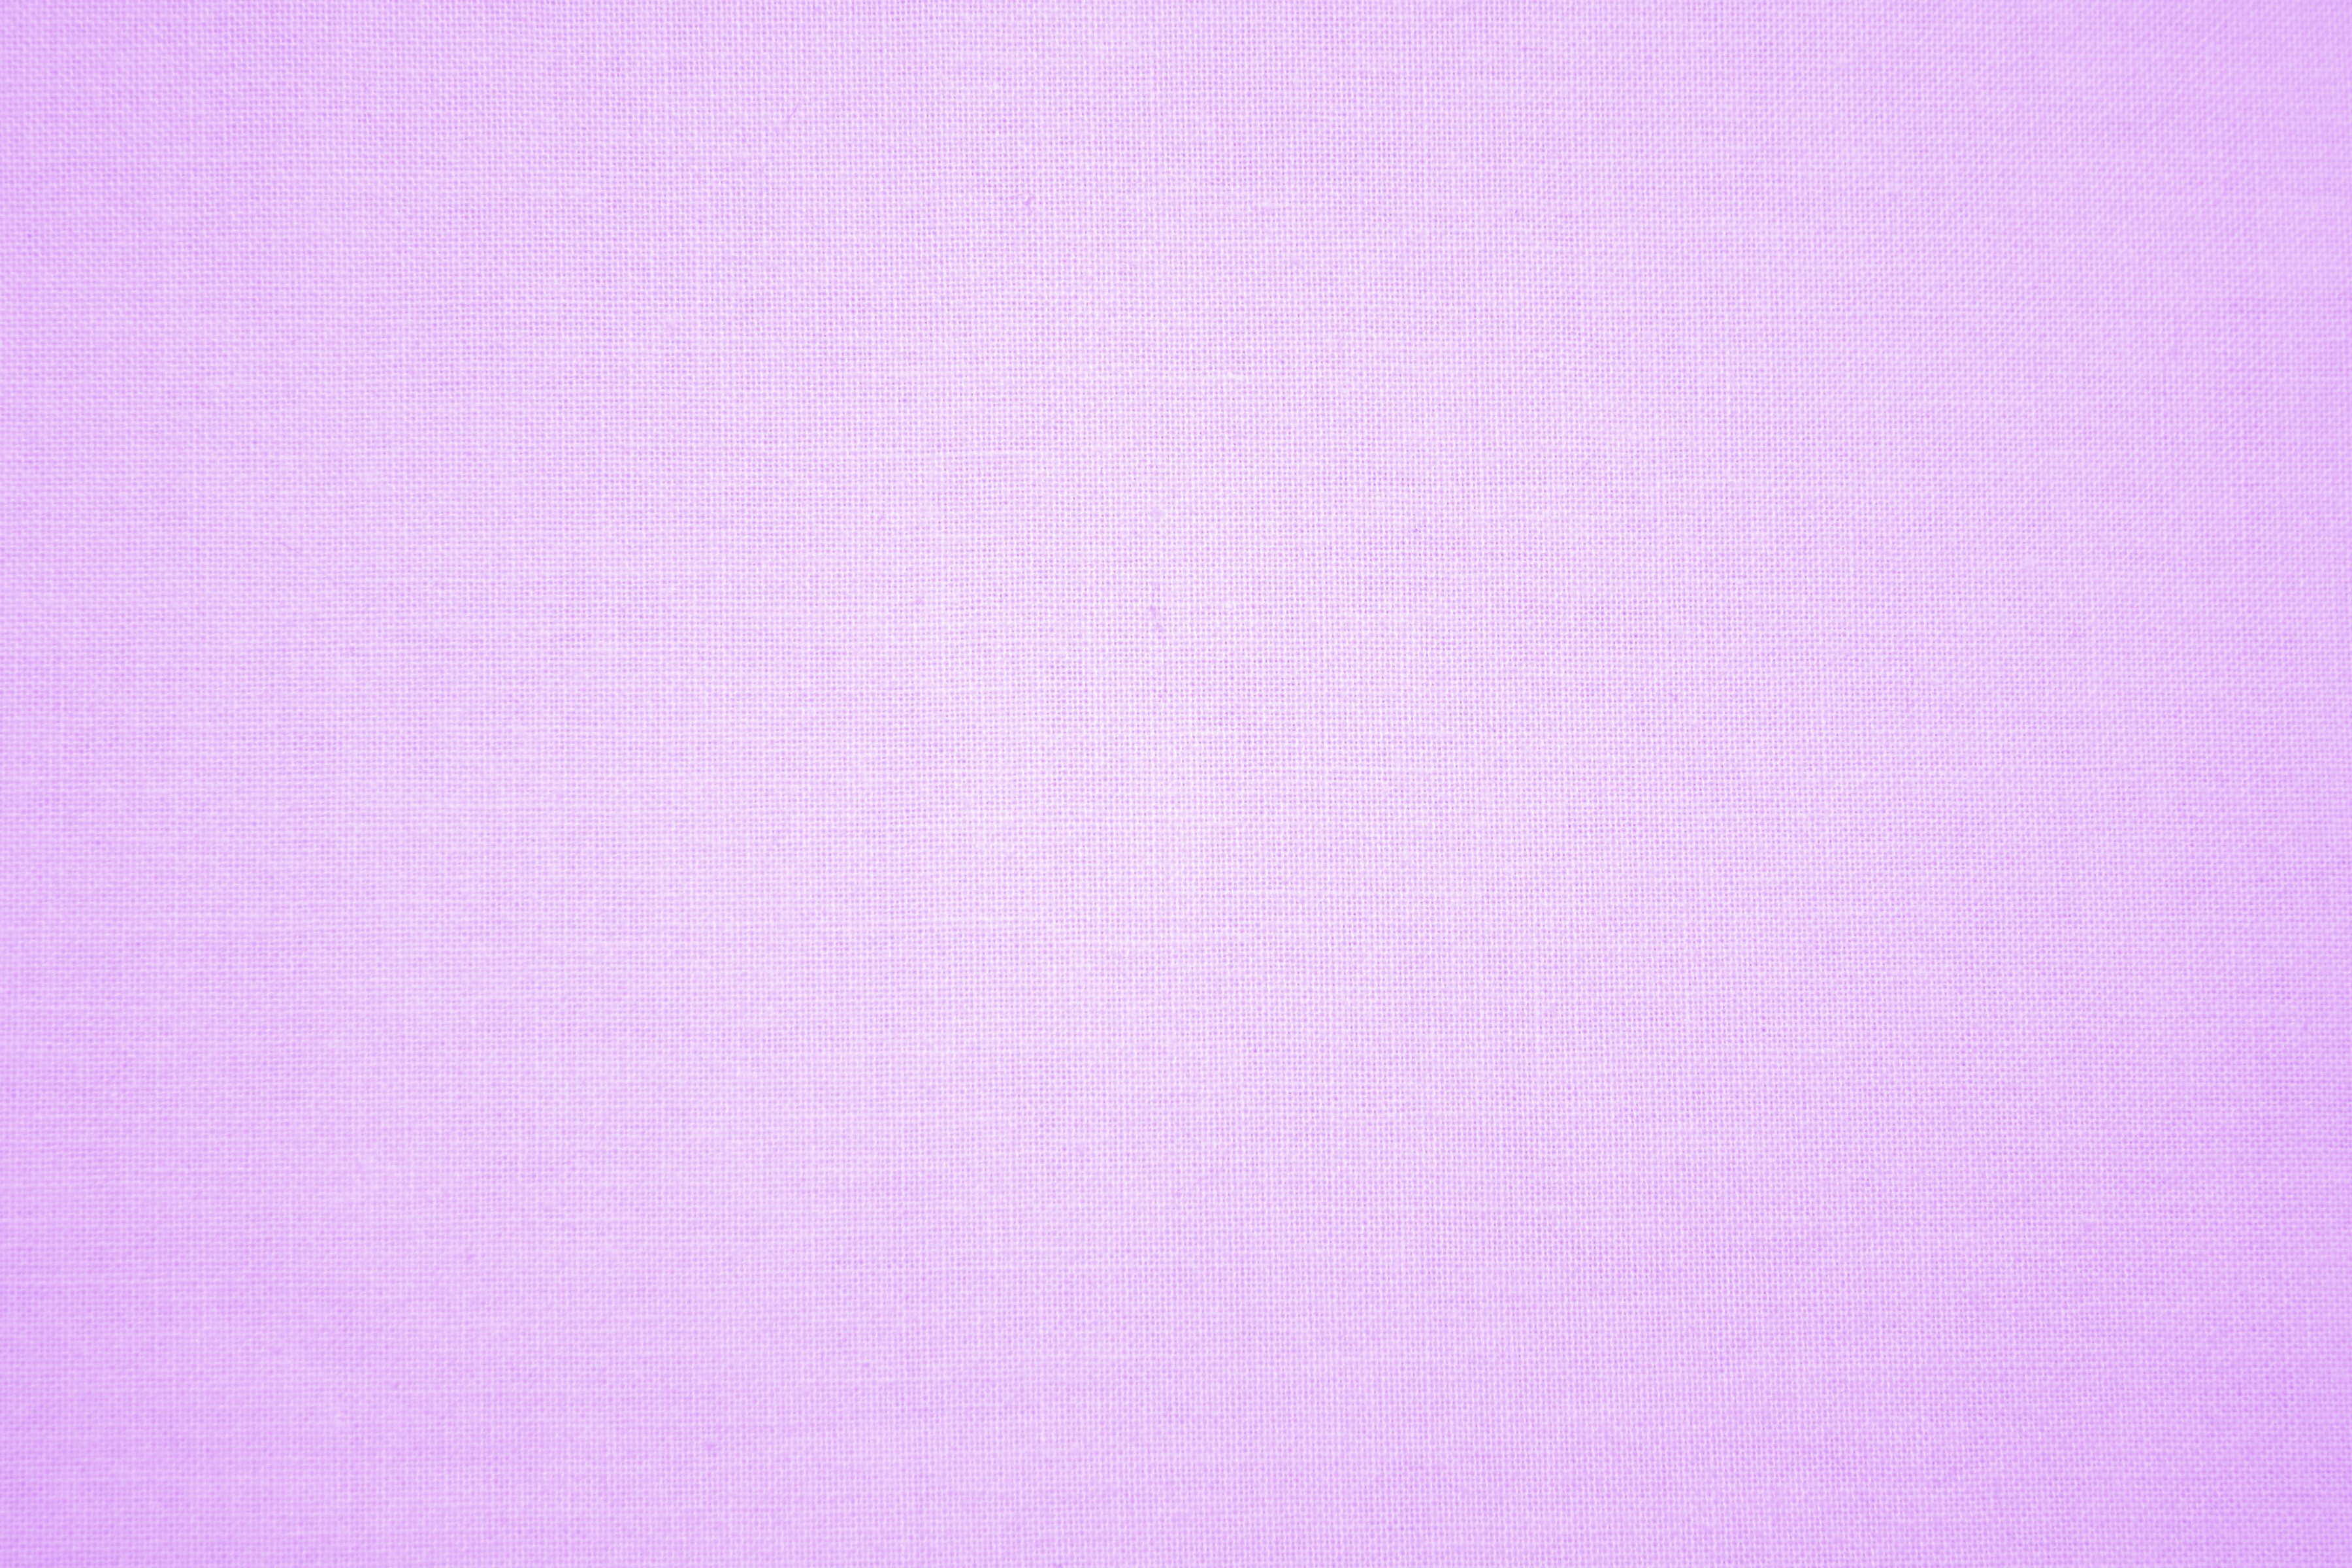 lavender or light purple 3600x2400